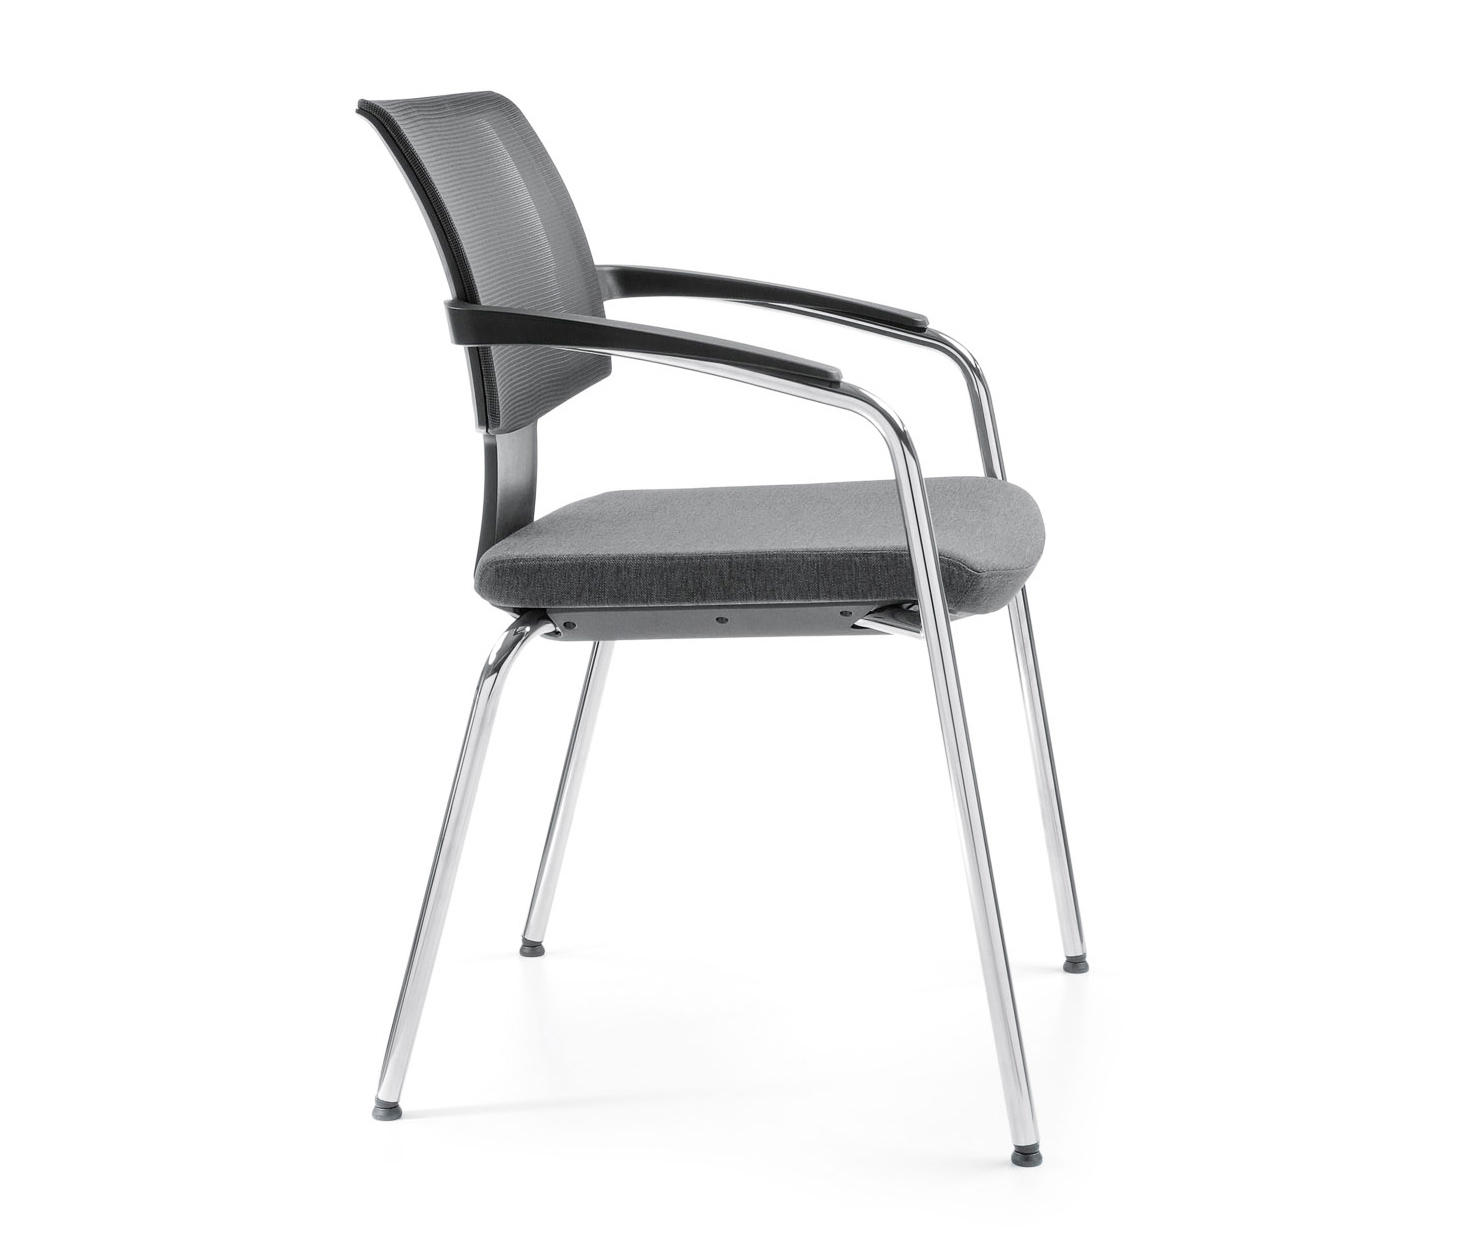 steel net chair wheelchair brakes xenon 20h chairs from profim architonic by